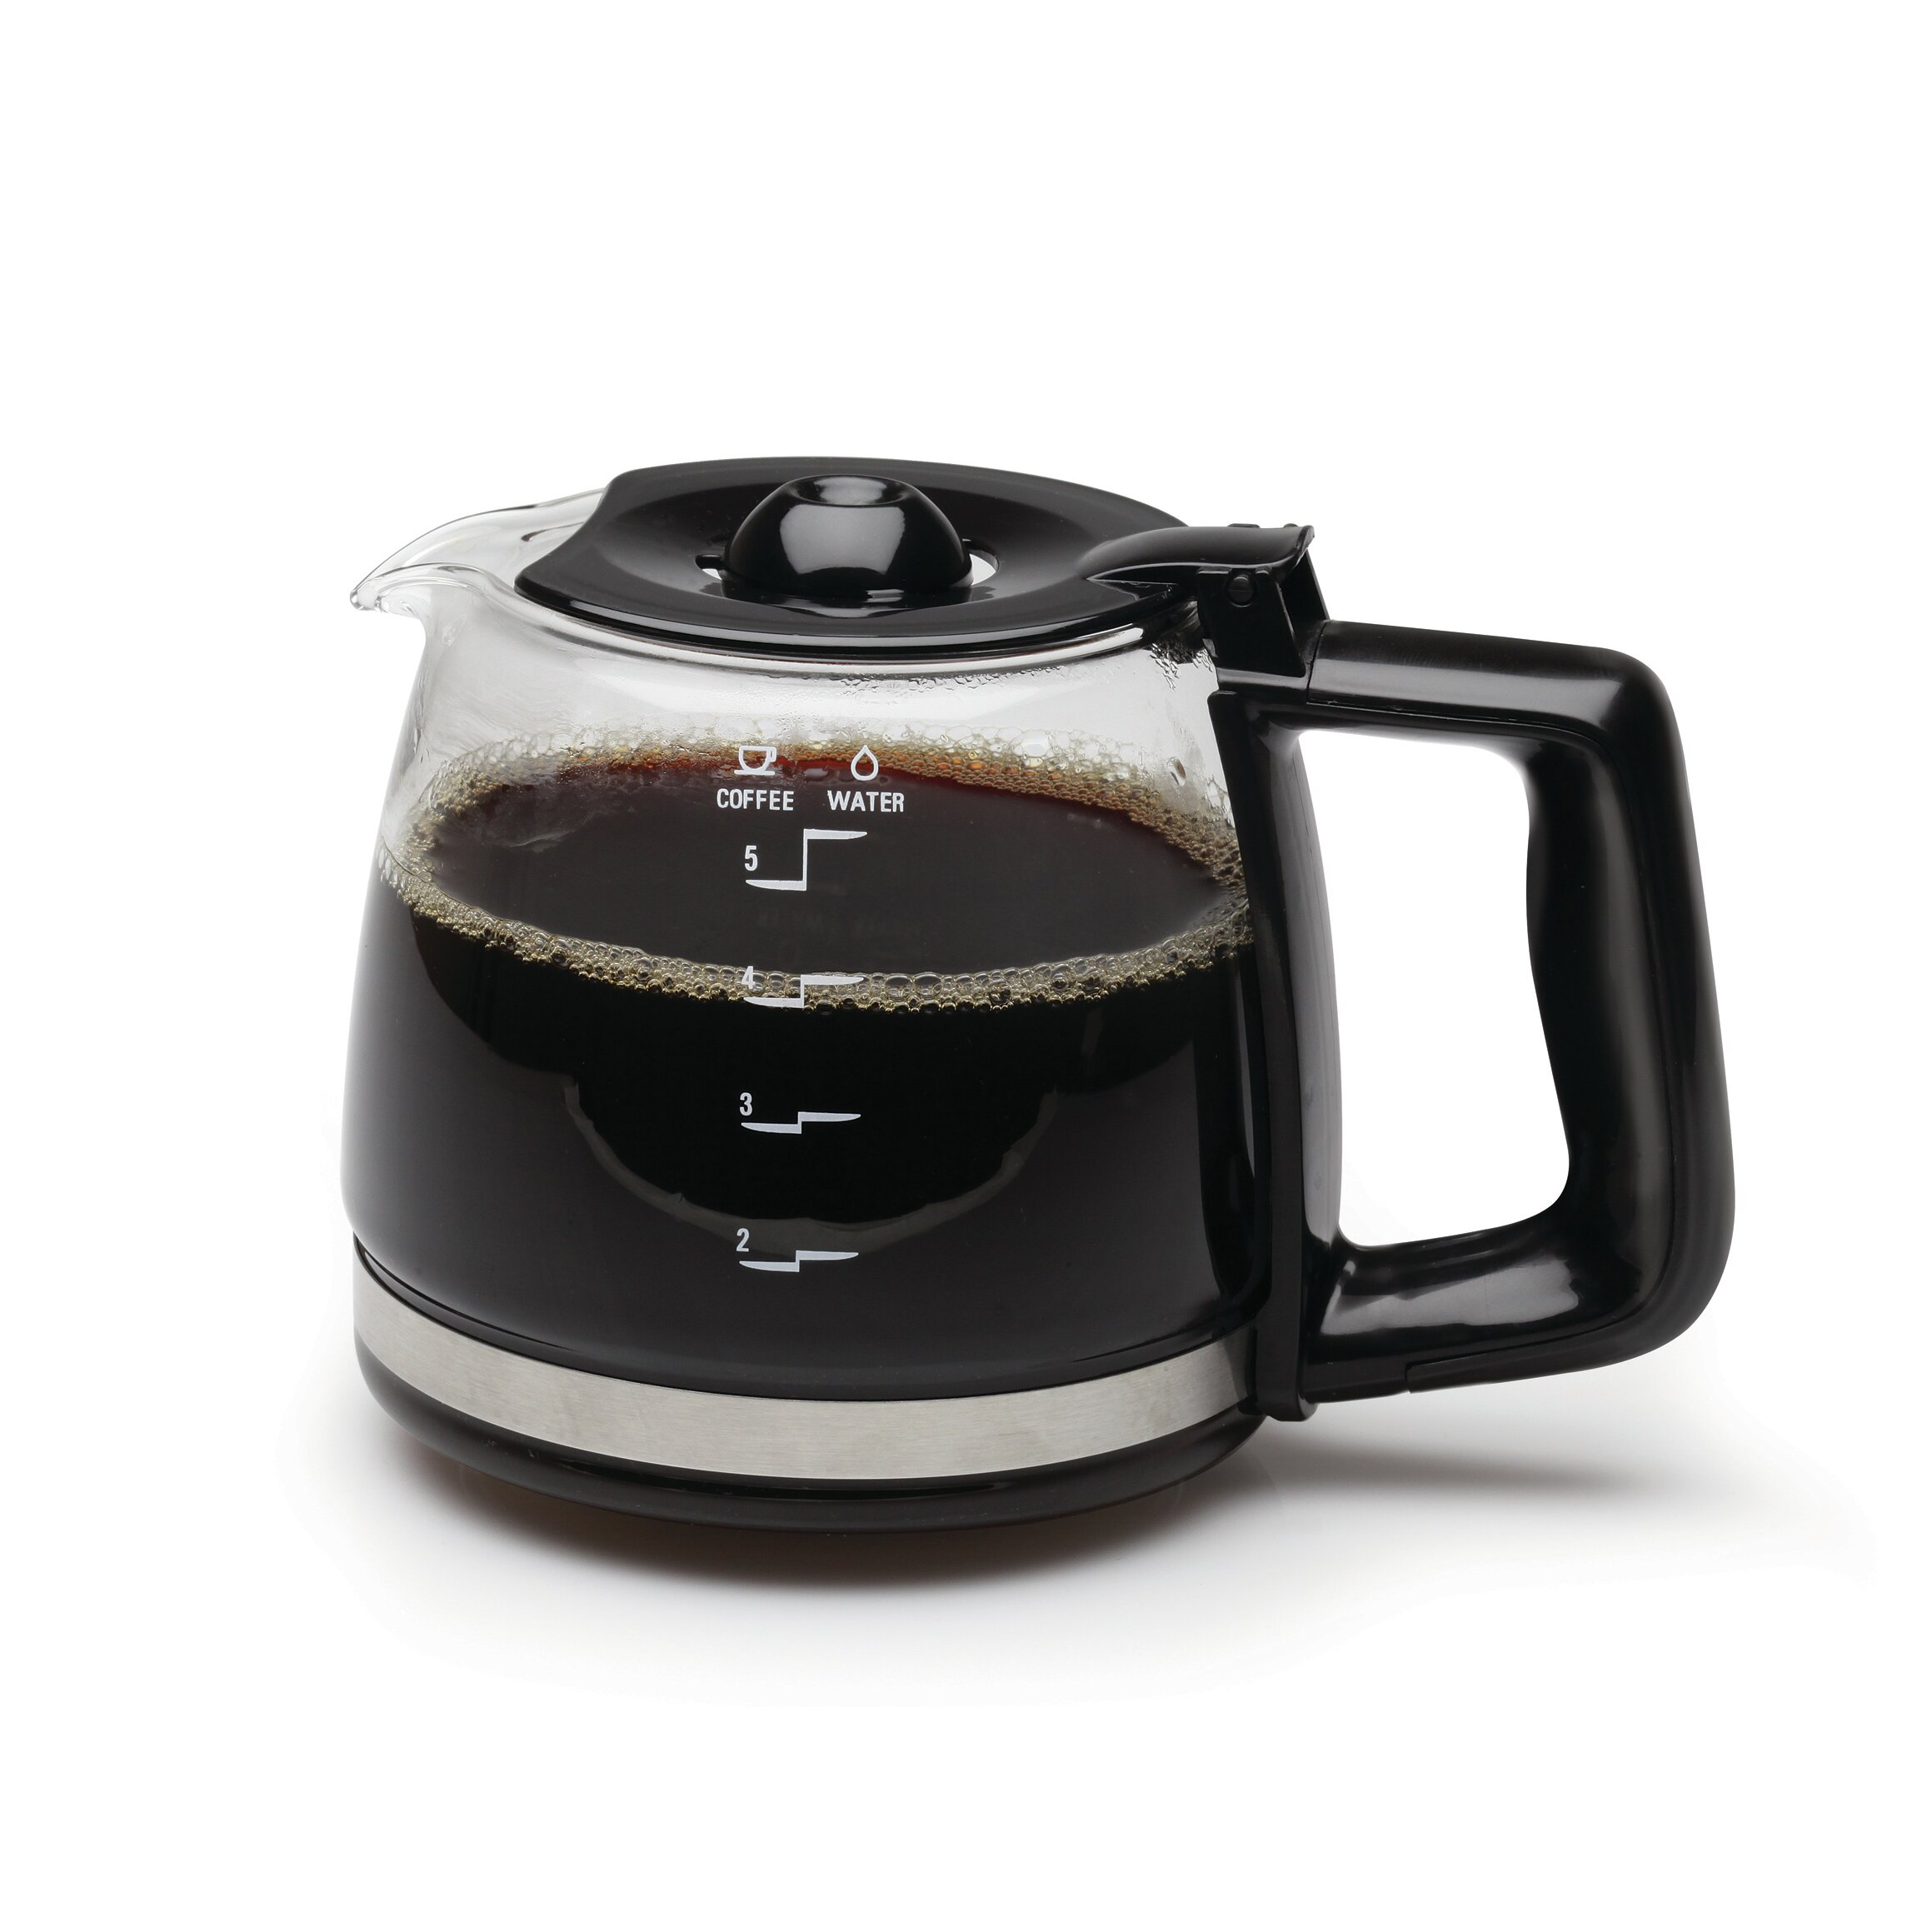 Mini Drip Coffee Maker : Capresso 5-Cup Mini Drip Coffee Maker & Reviews Wayfair